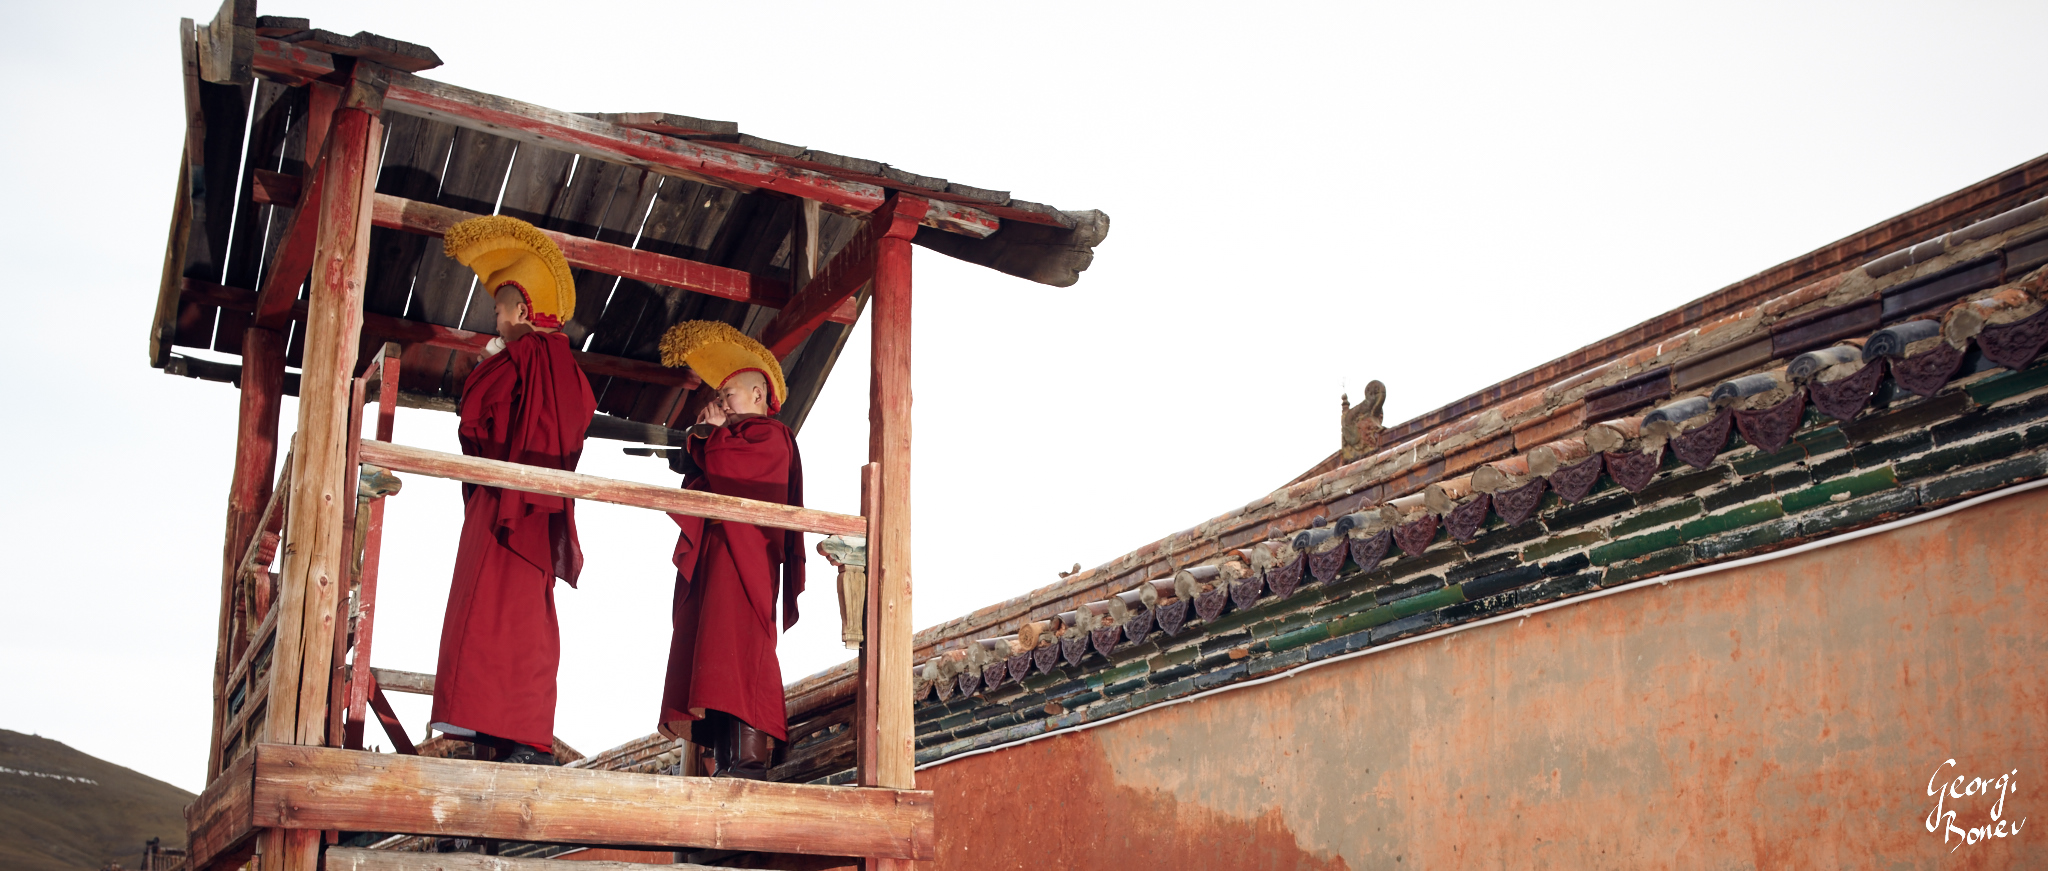 MONKS IN THE WATCHTOWER OF AMARBAYASGALANT MONASTERY, MONGOLIA